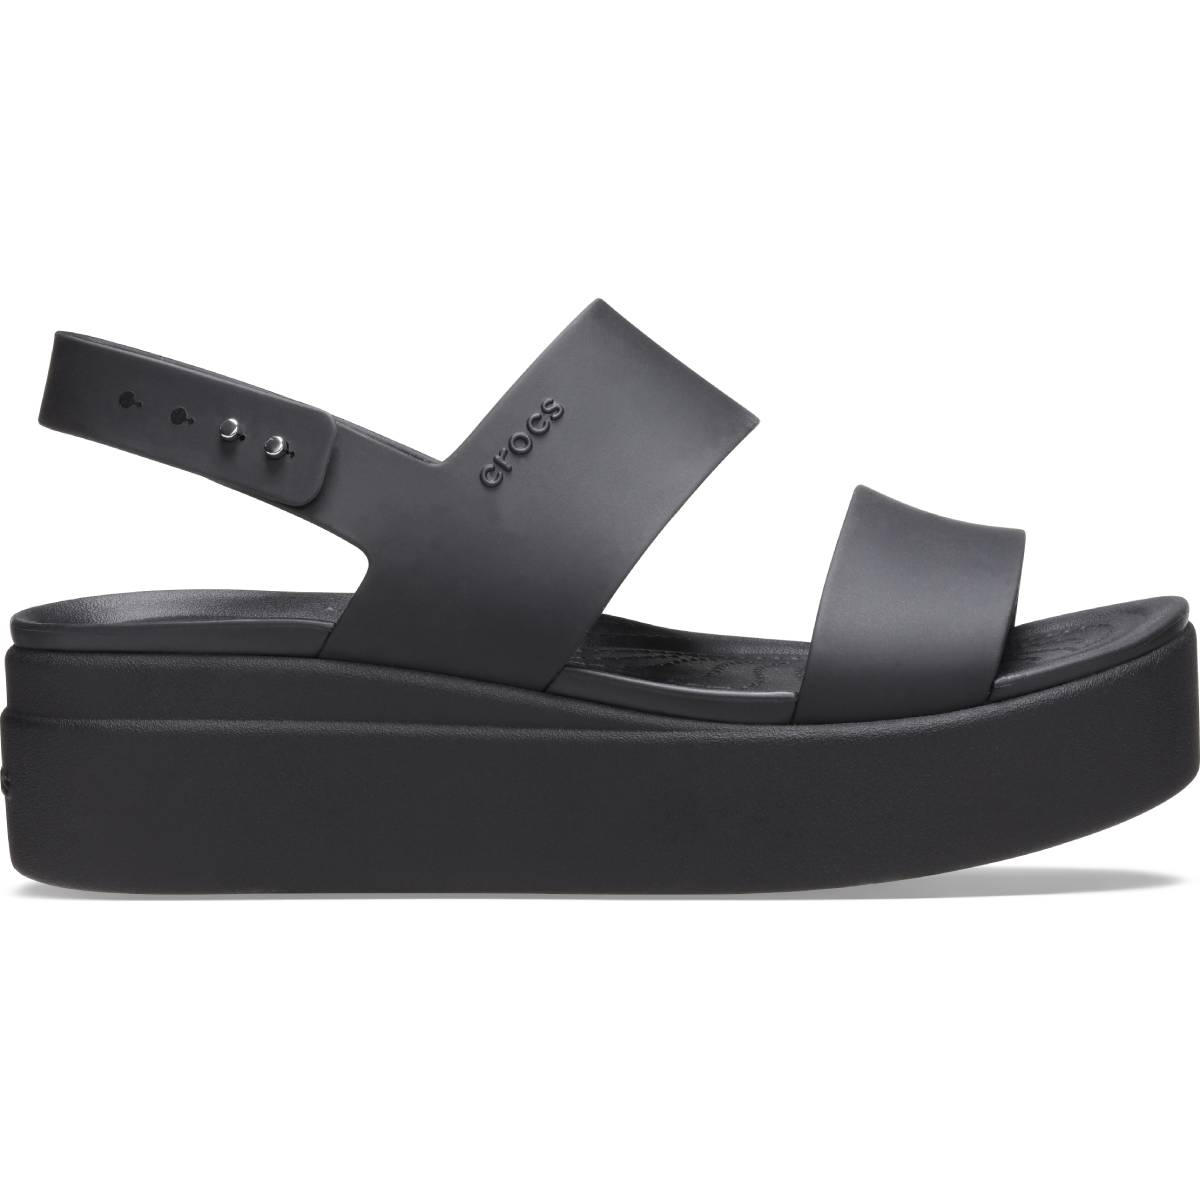 Crocs Brooklyn Low Wedge W - Siyah/Siyah